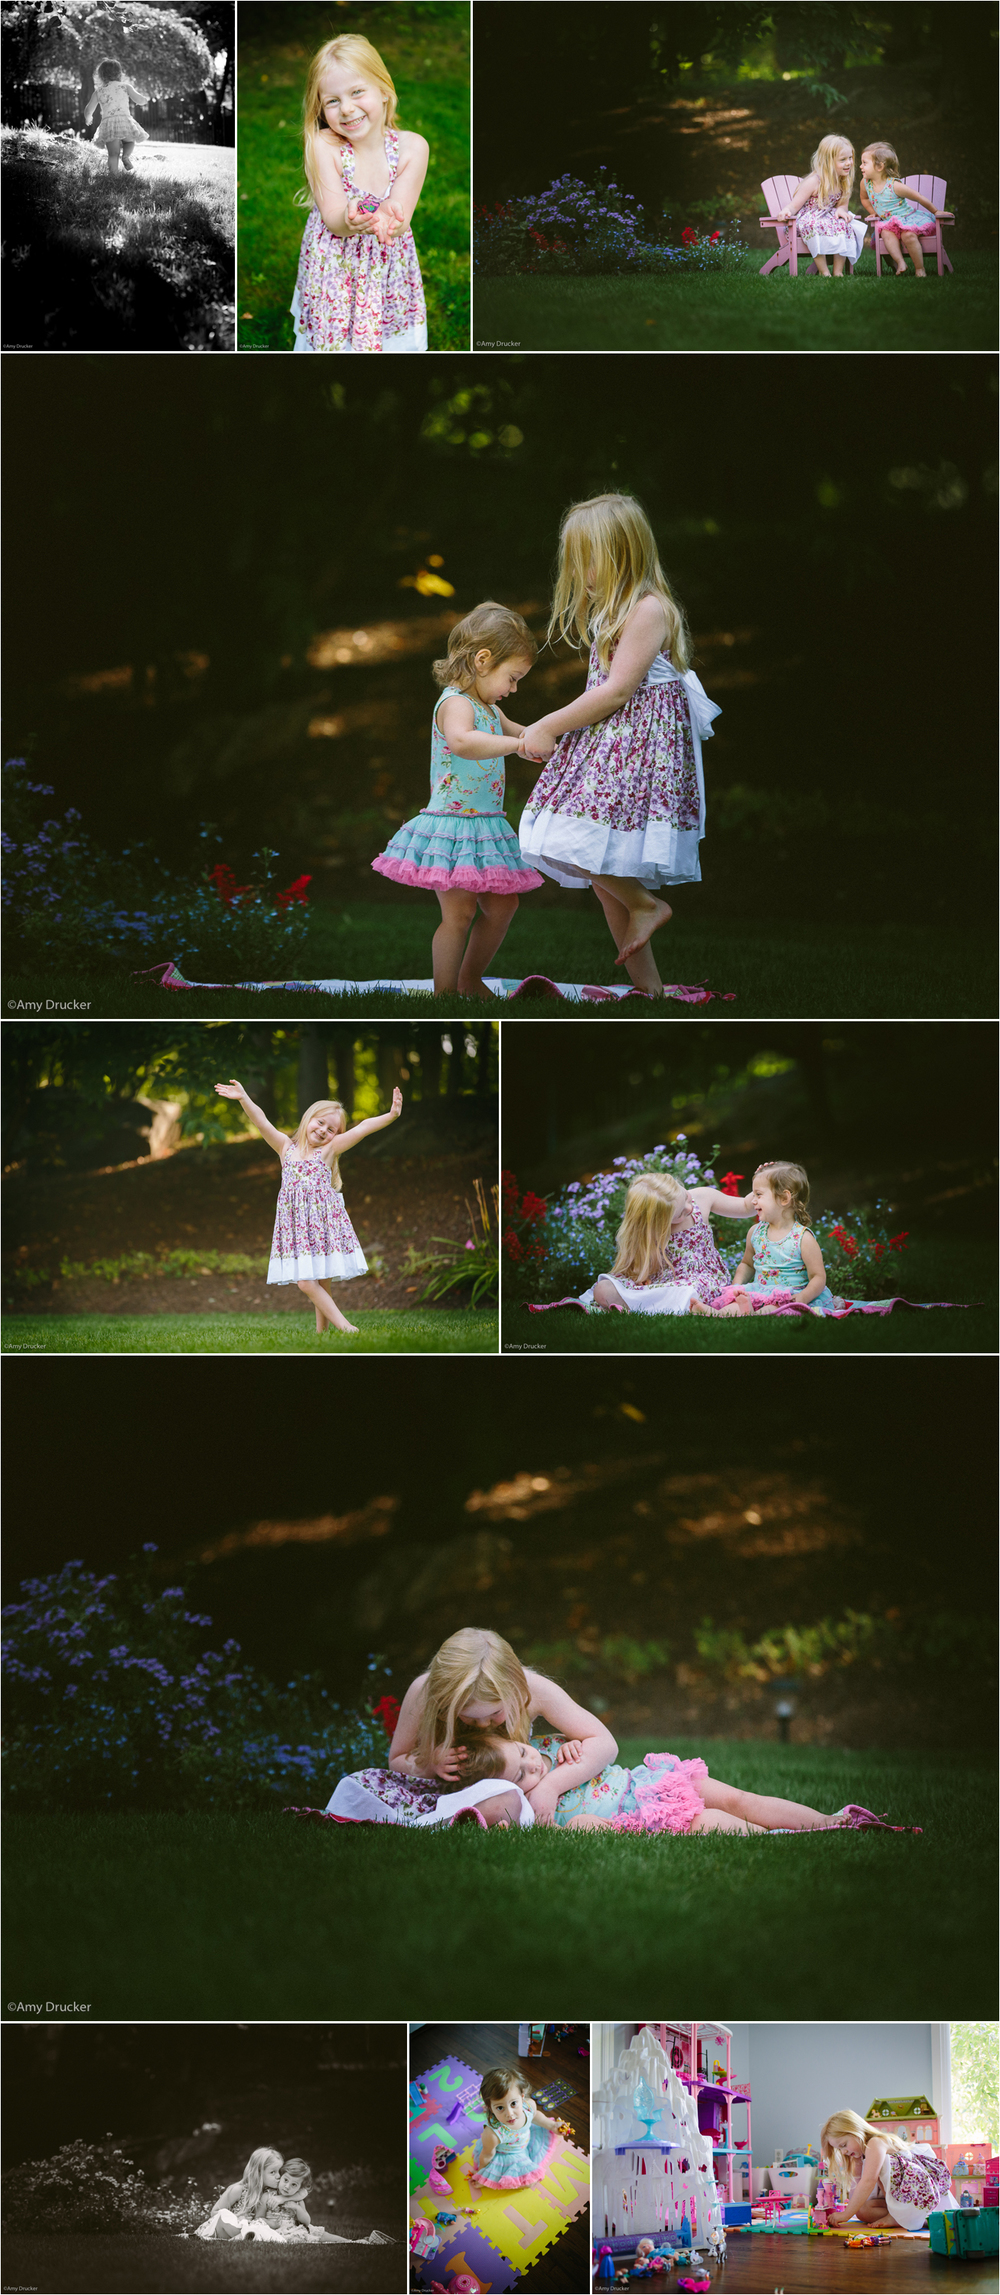 amy_drucker_photography_childrens_portraits_new_york1